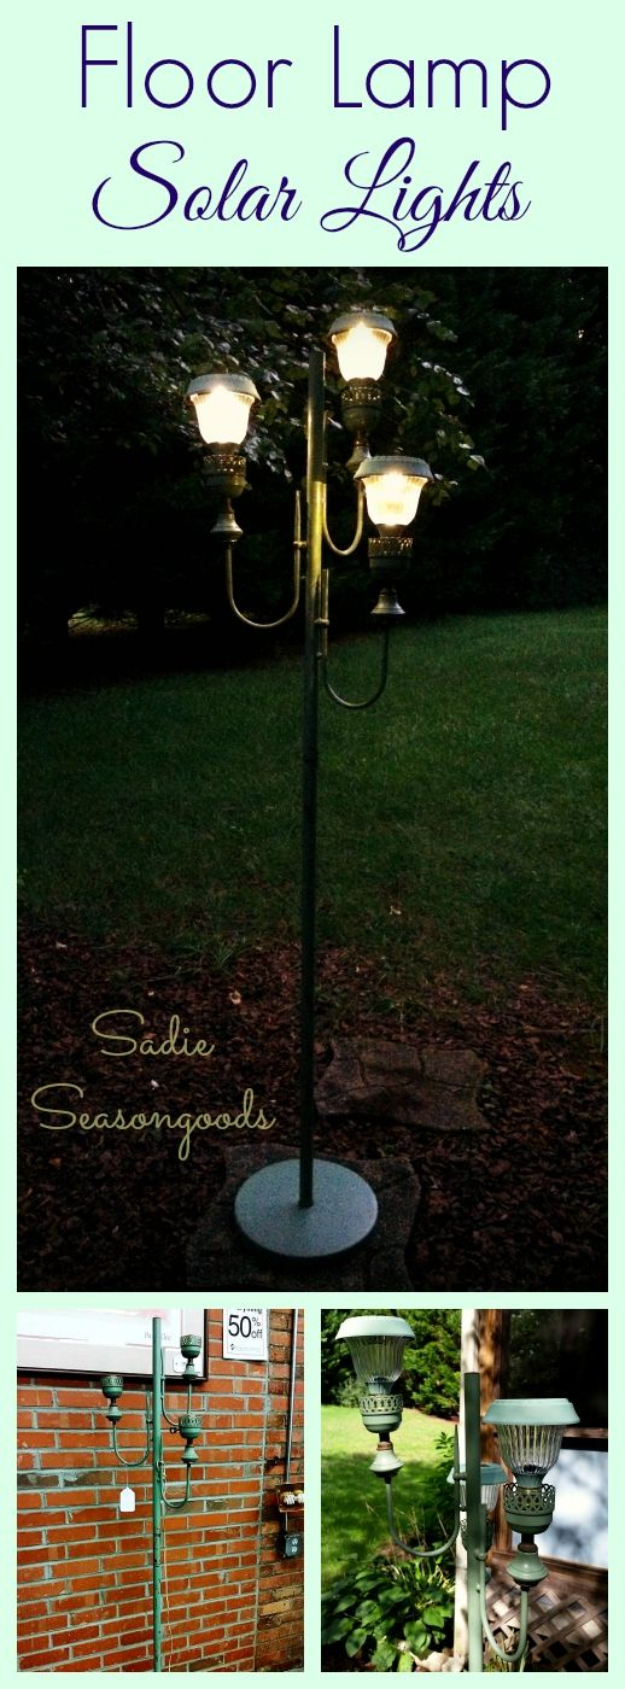 DIY Solar Powered Projects - Floor Lamp Solar Lights - Easy Solar Crafts and DYI Ideas for Making Solar Power Things You Can Use To Save Energy - Step by Step Tutorials for Making Things Without Batteries - DIY Projects and Crafts for Men and Women